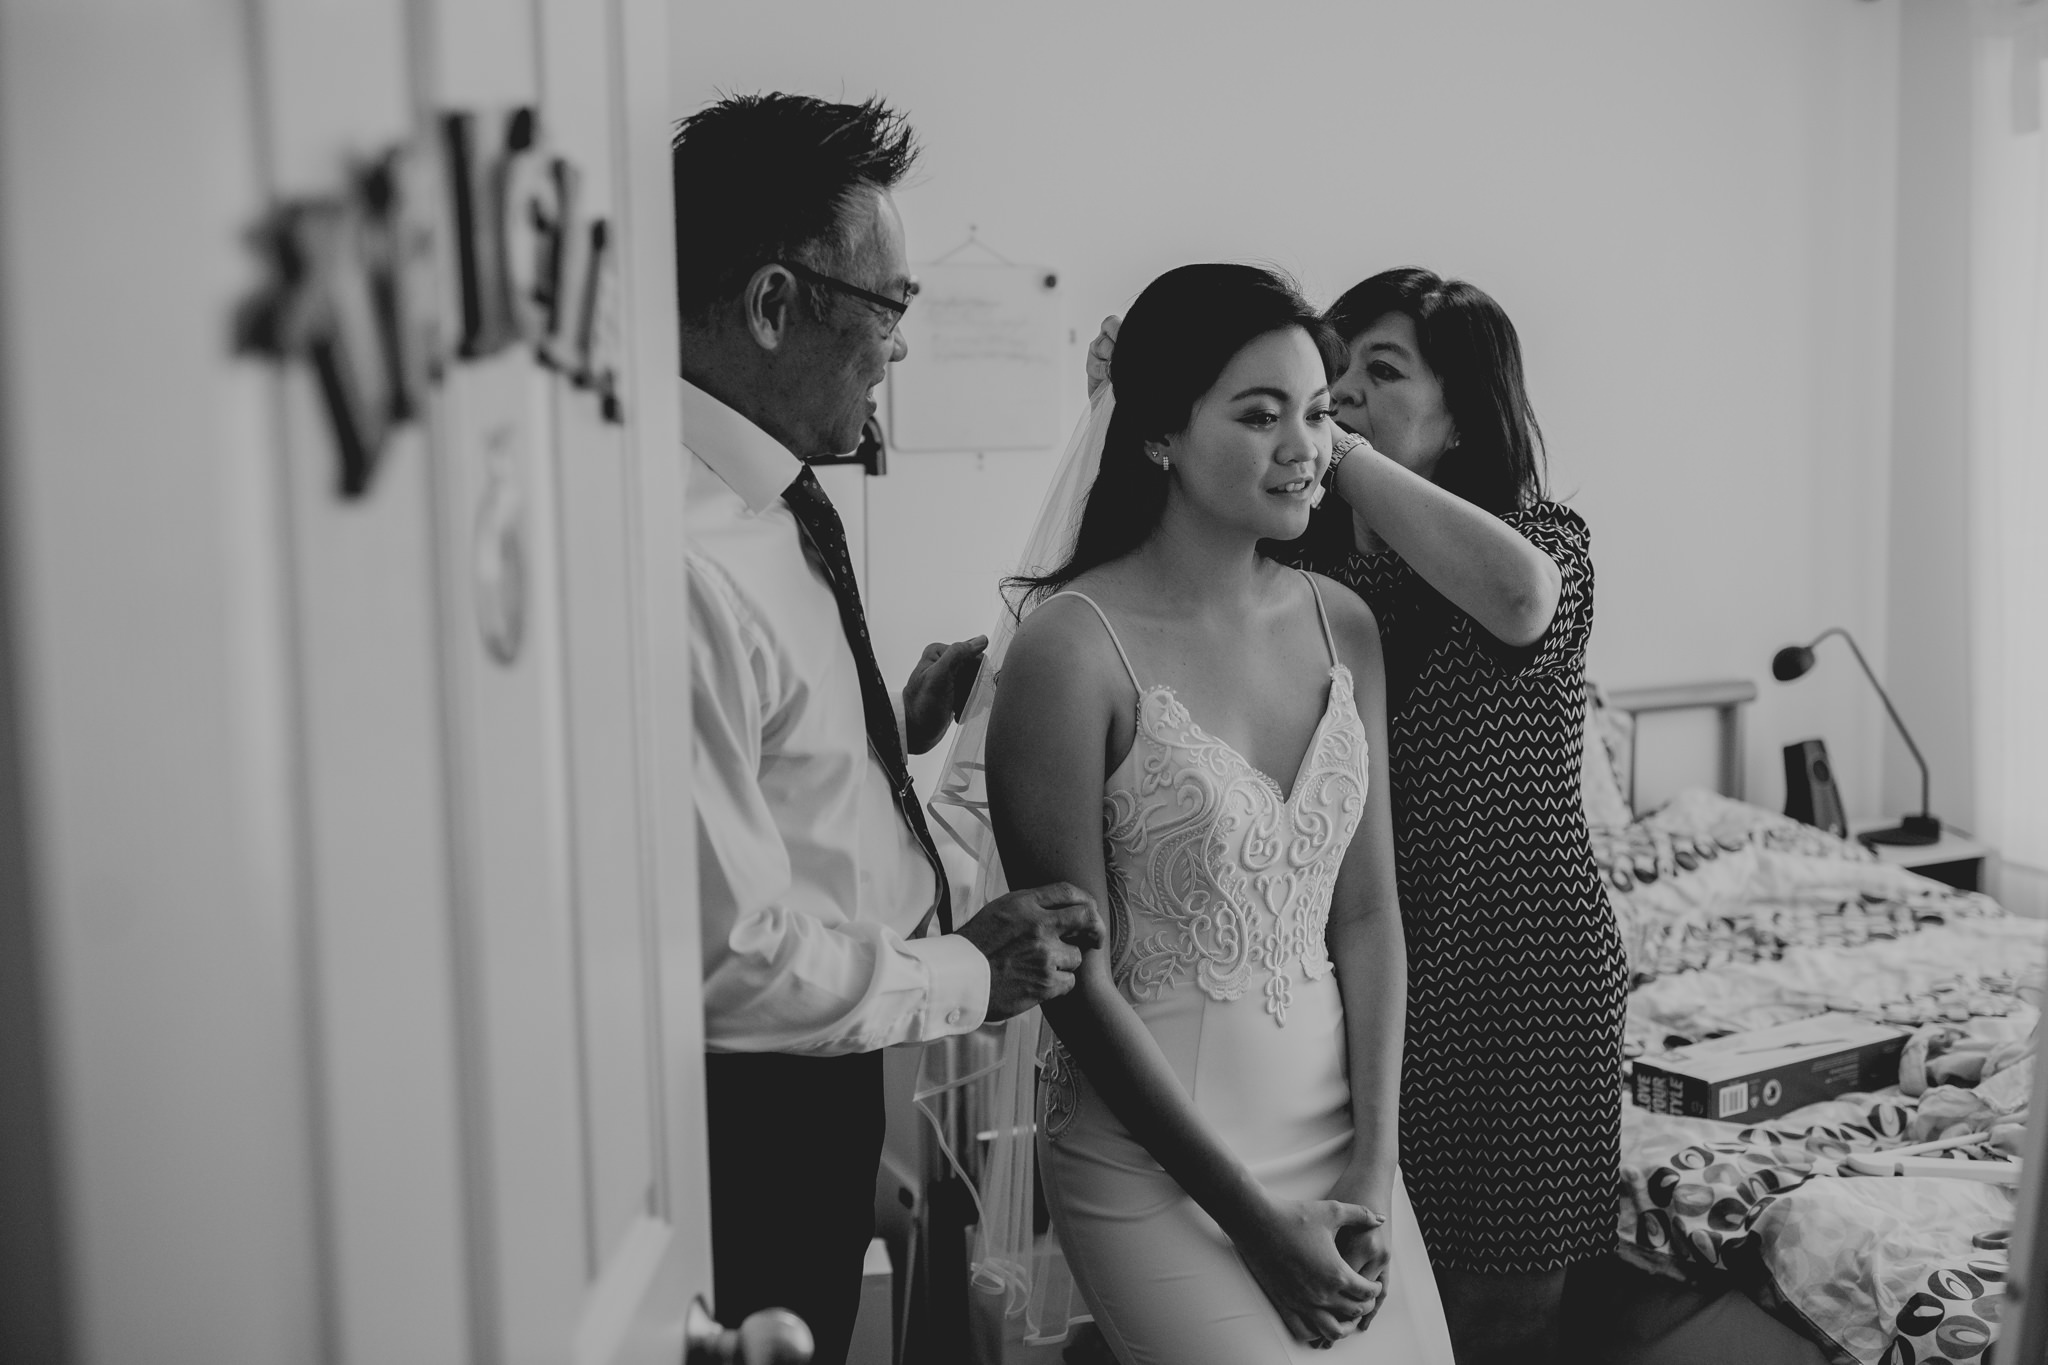 A mother and father help a bride put a wedding veil in her hair